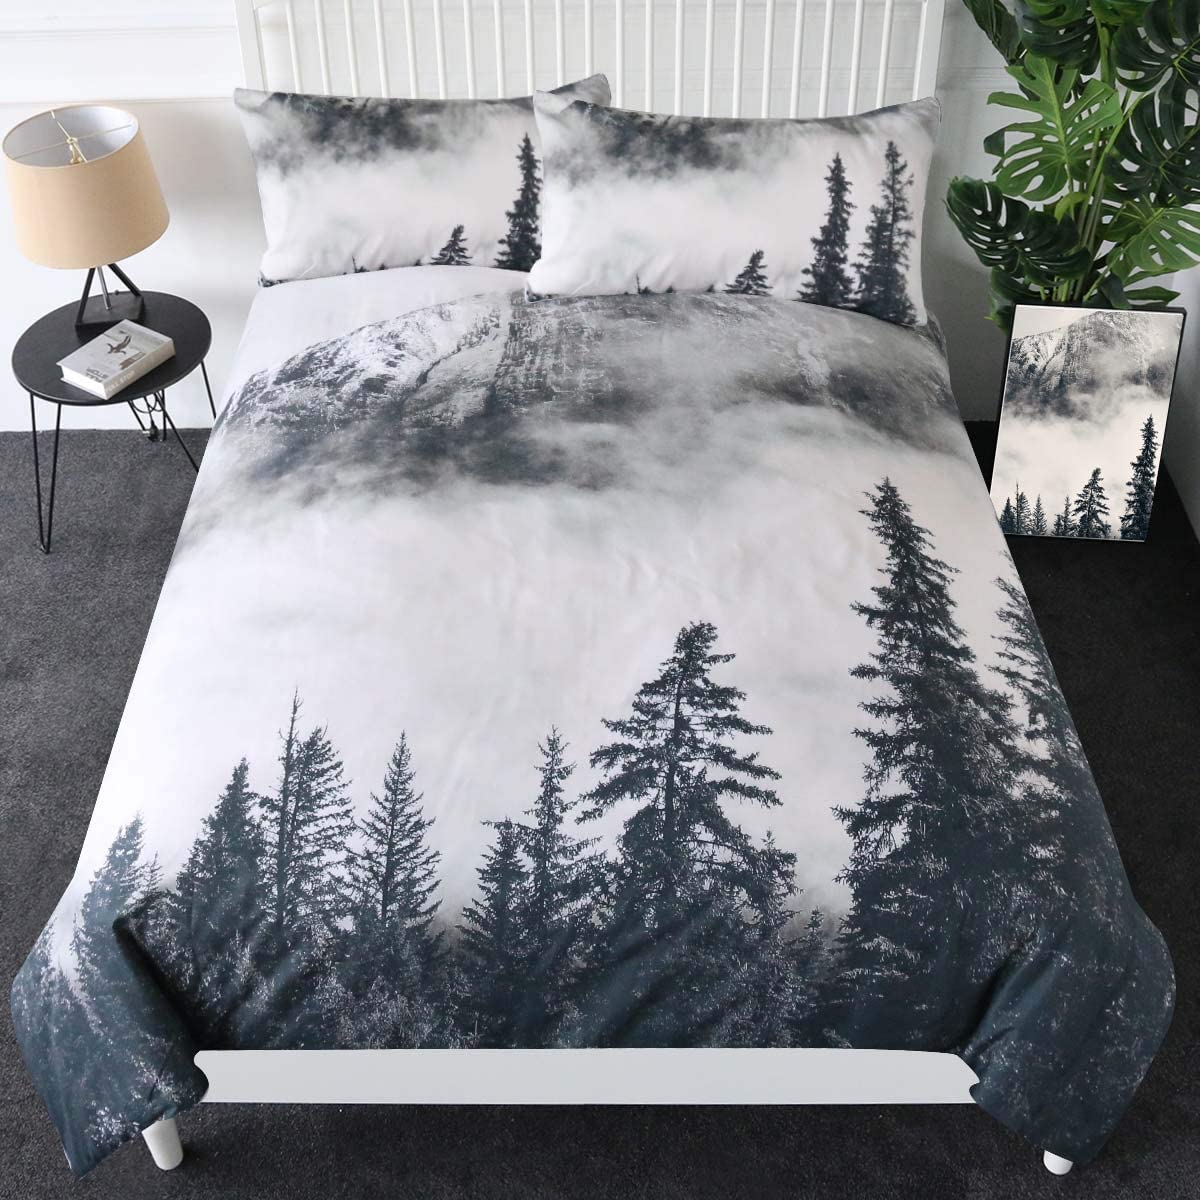 Sleepwish Smoky Mountain Bedding online shopping Forest Pieces Max 86% OFF Duvet Cover Gre 3